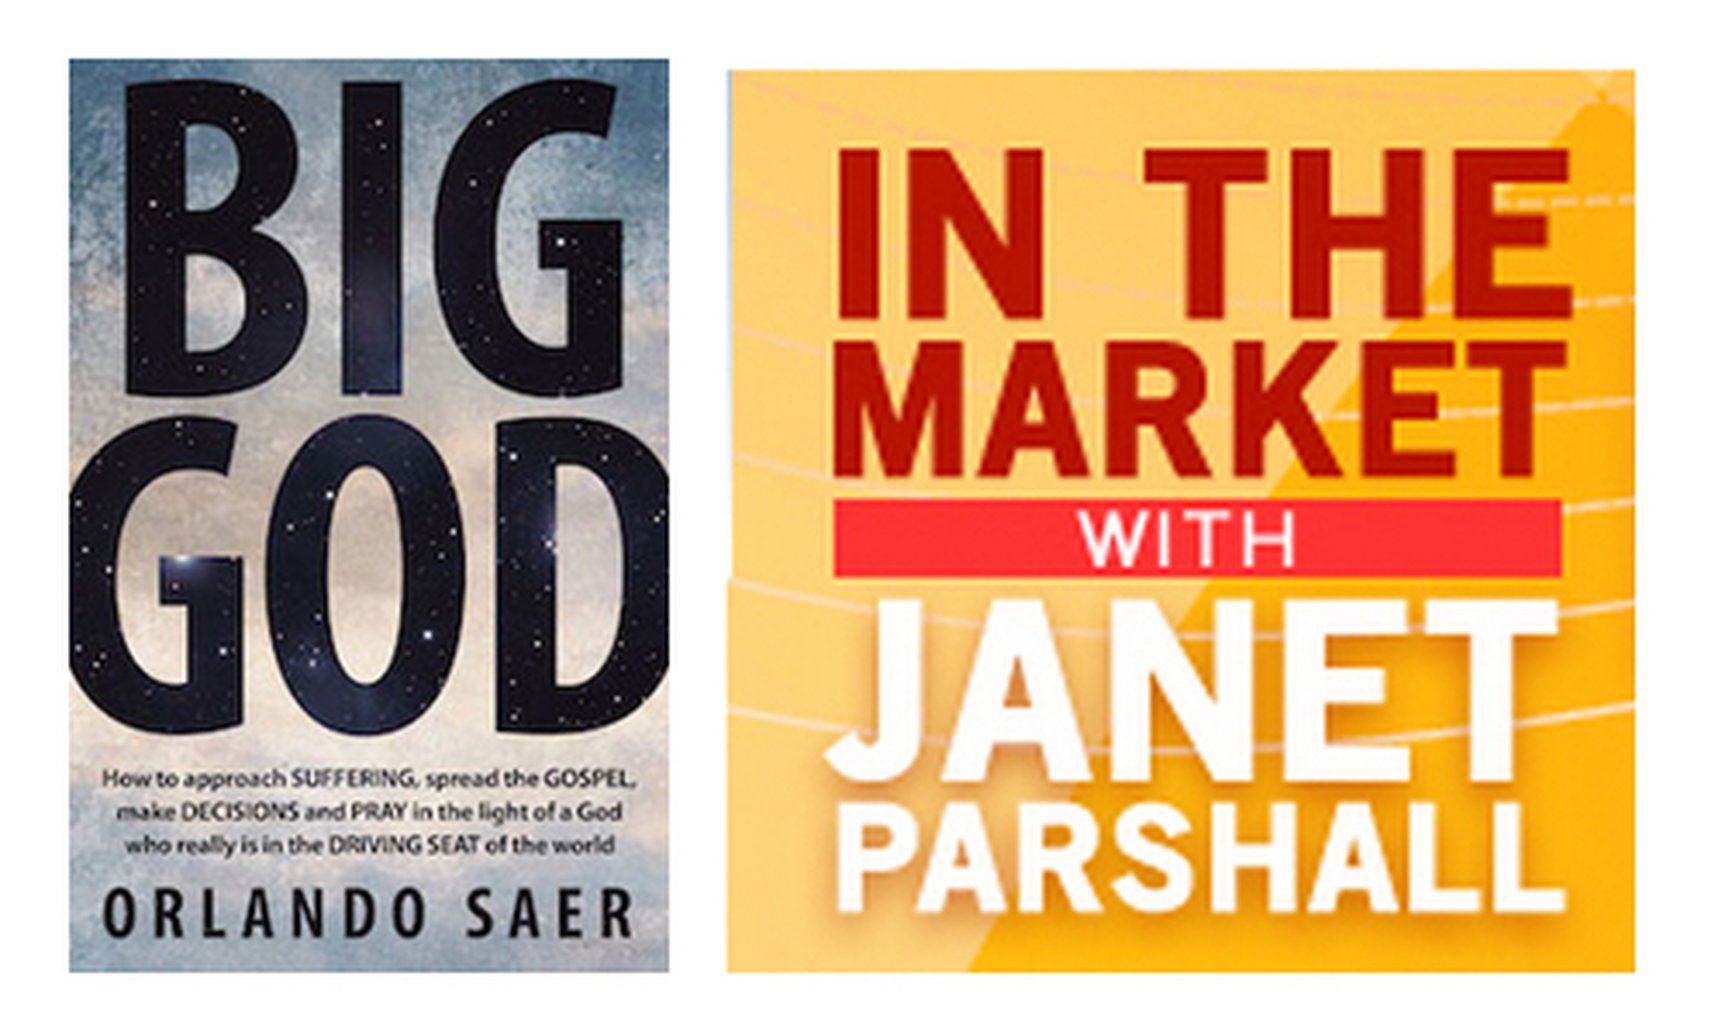 Orlando Saer Discusses 'Big God' on In the Market with Janet Parshall